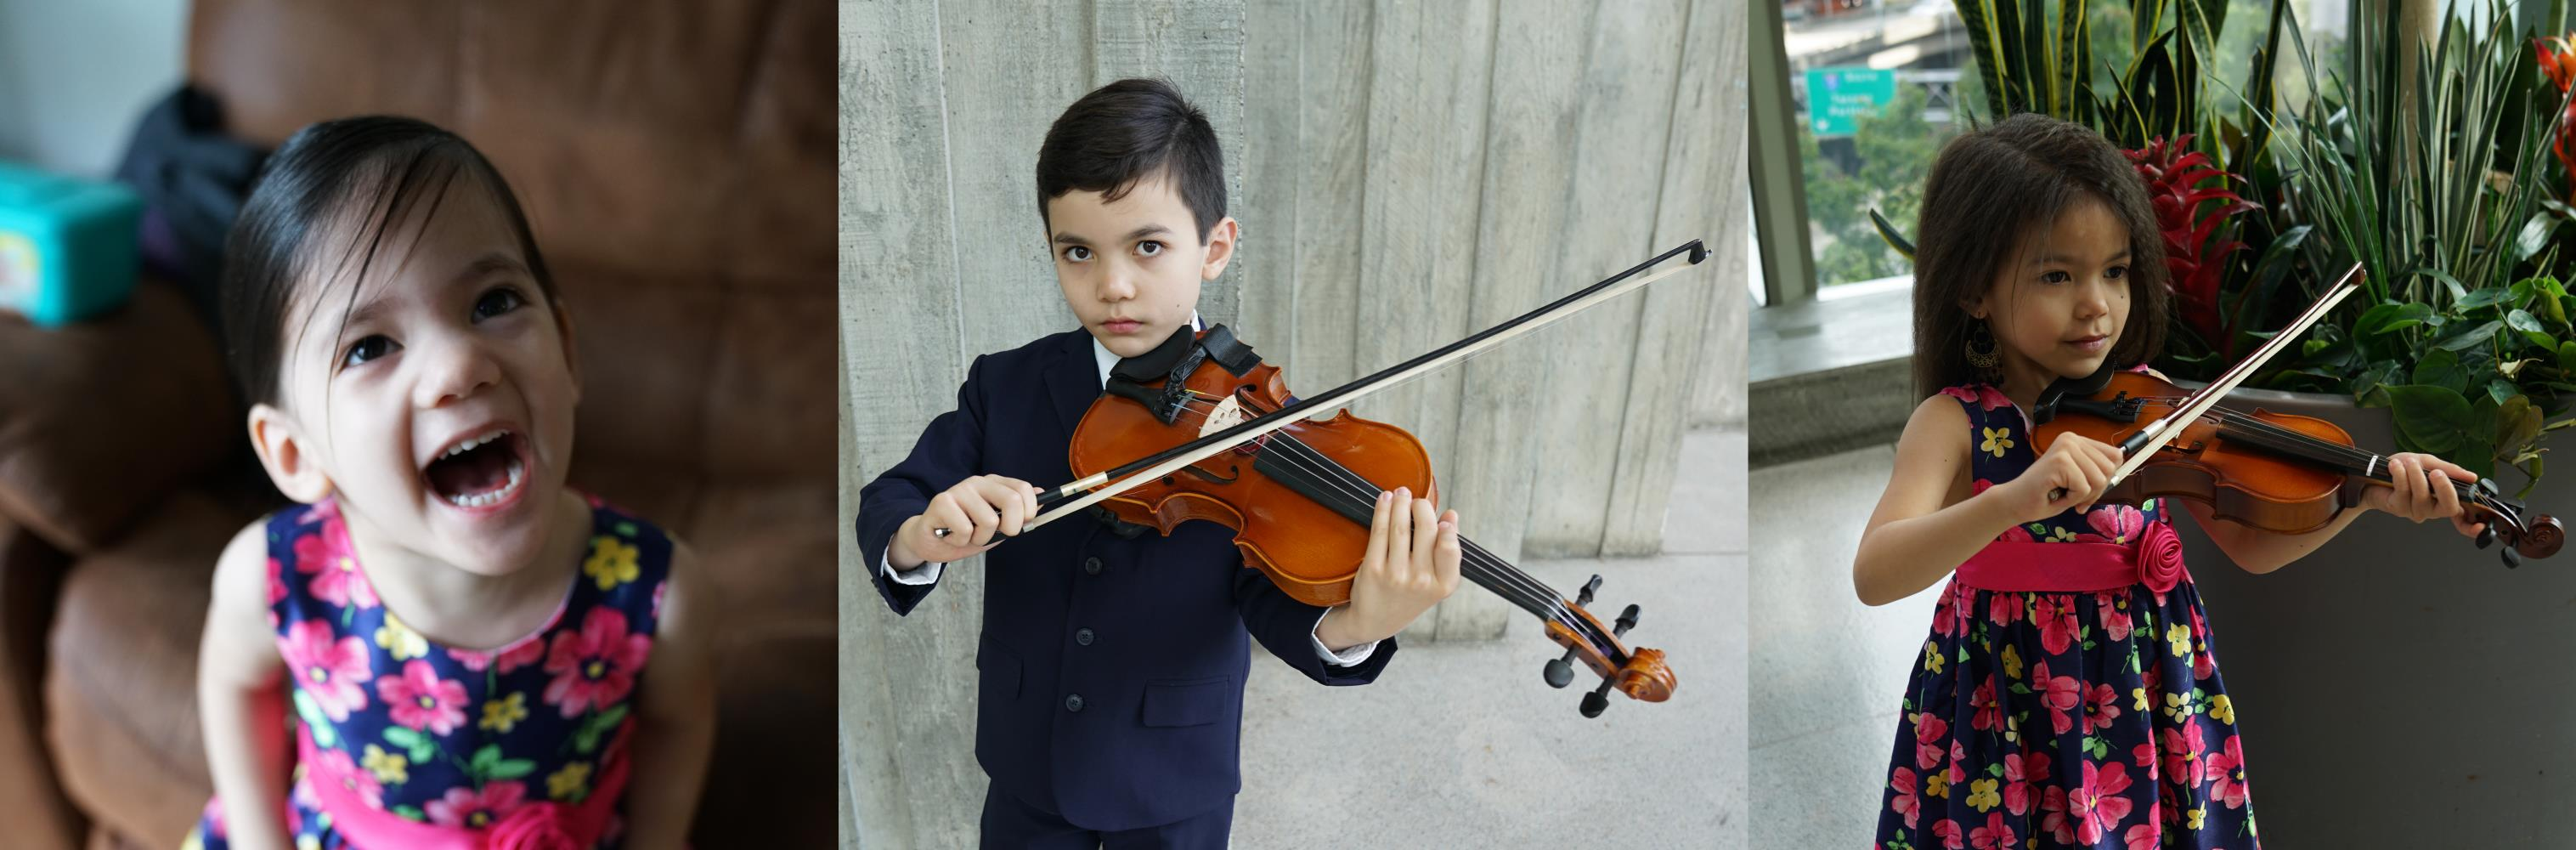 Kids loving live and loving violin.  Kids grow up smarter with string instrument training.